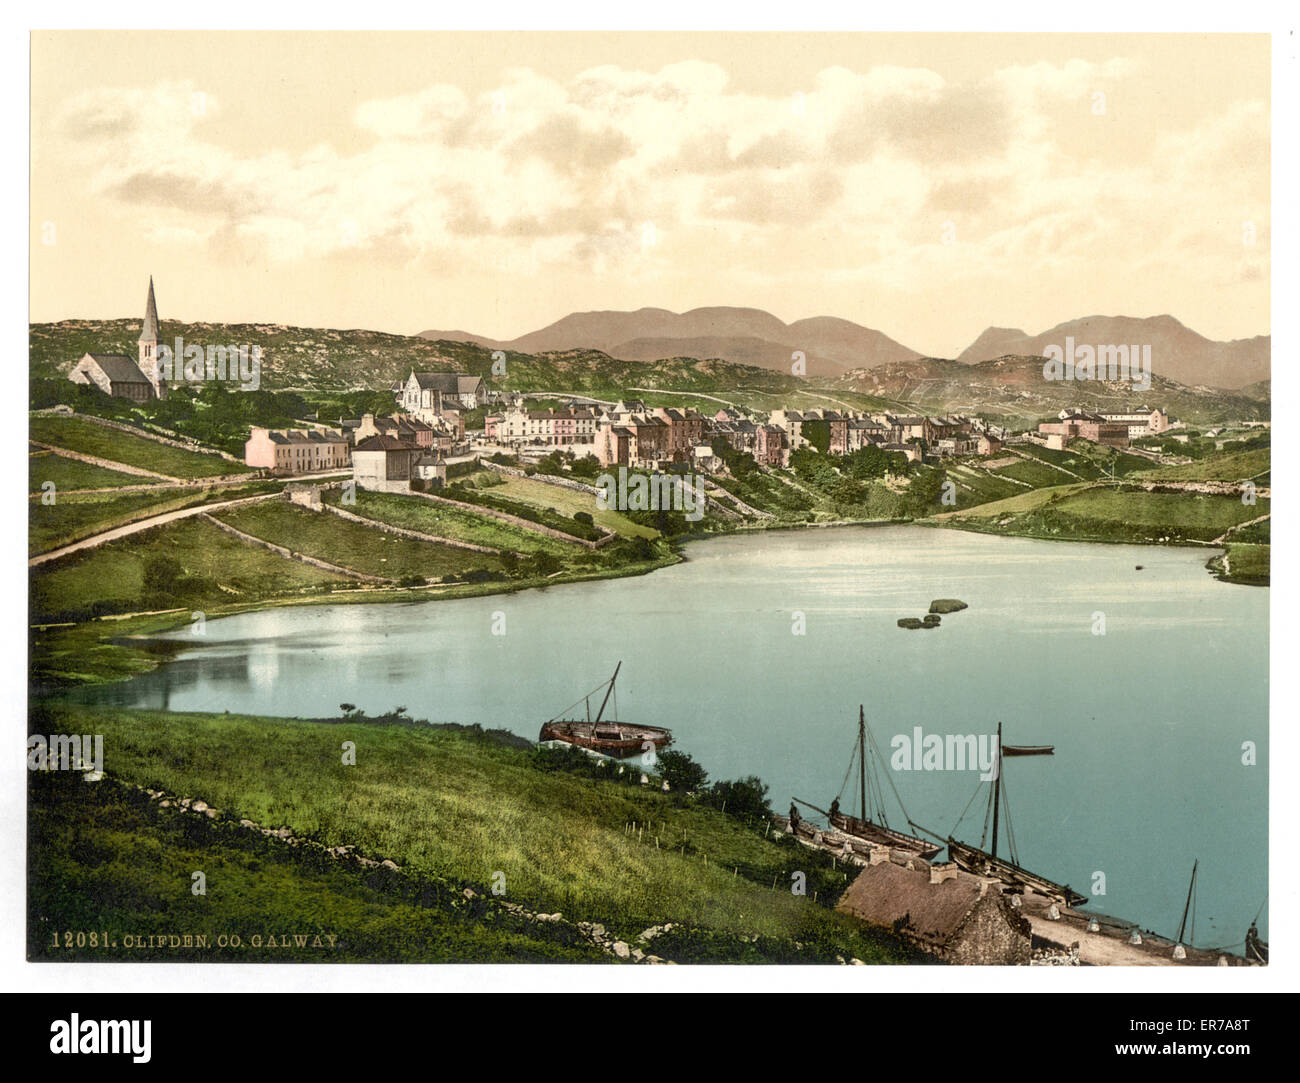 Clifden - Wikipedia